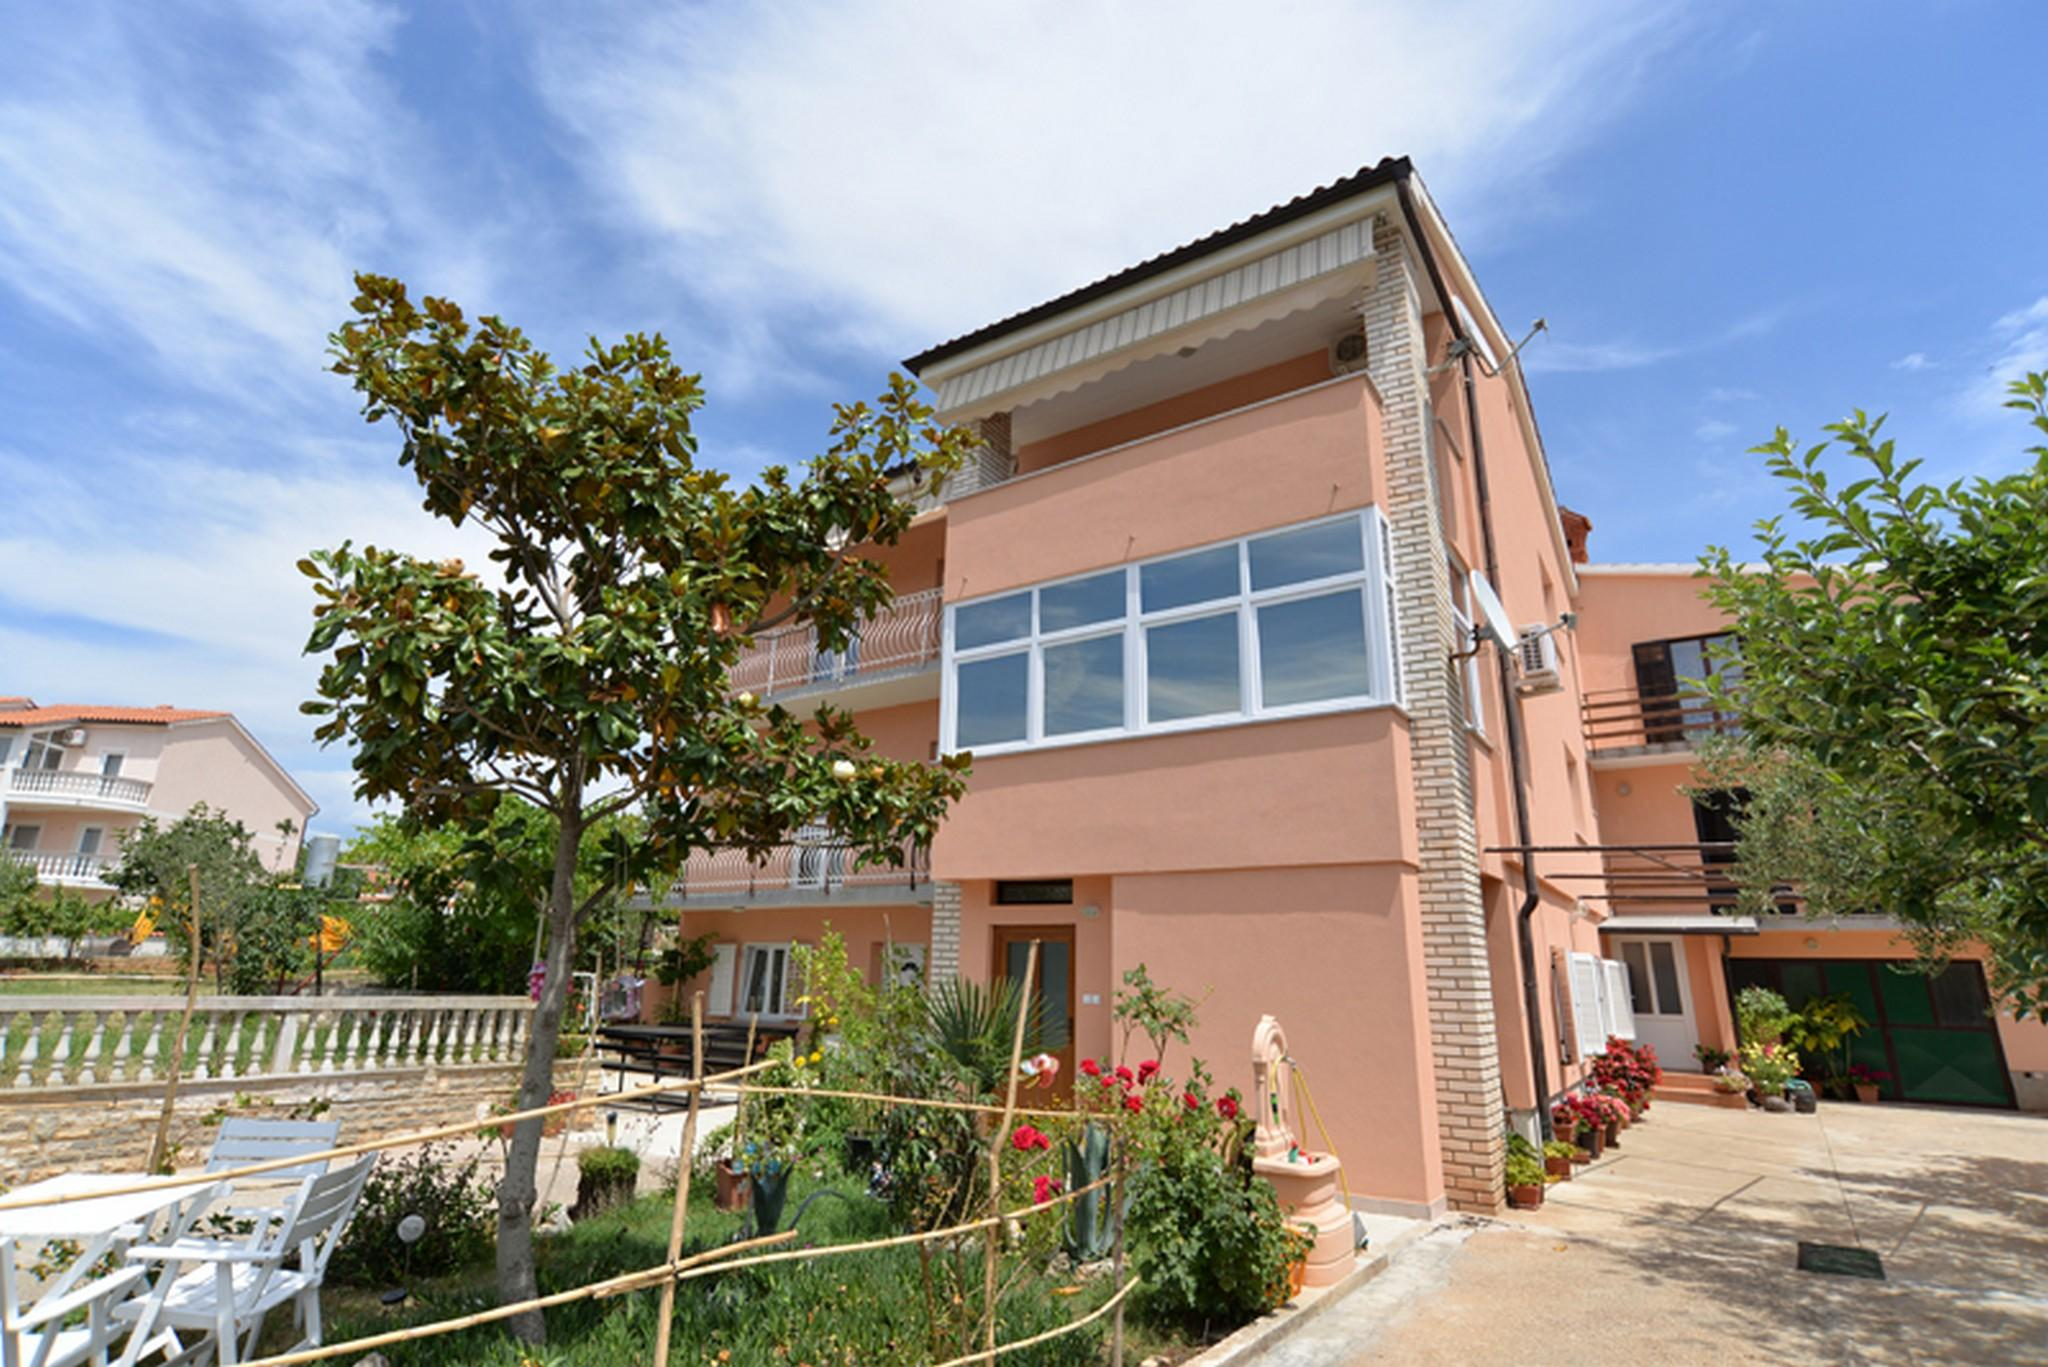 Traditional Two Bedroom Apartment In Medulin